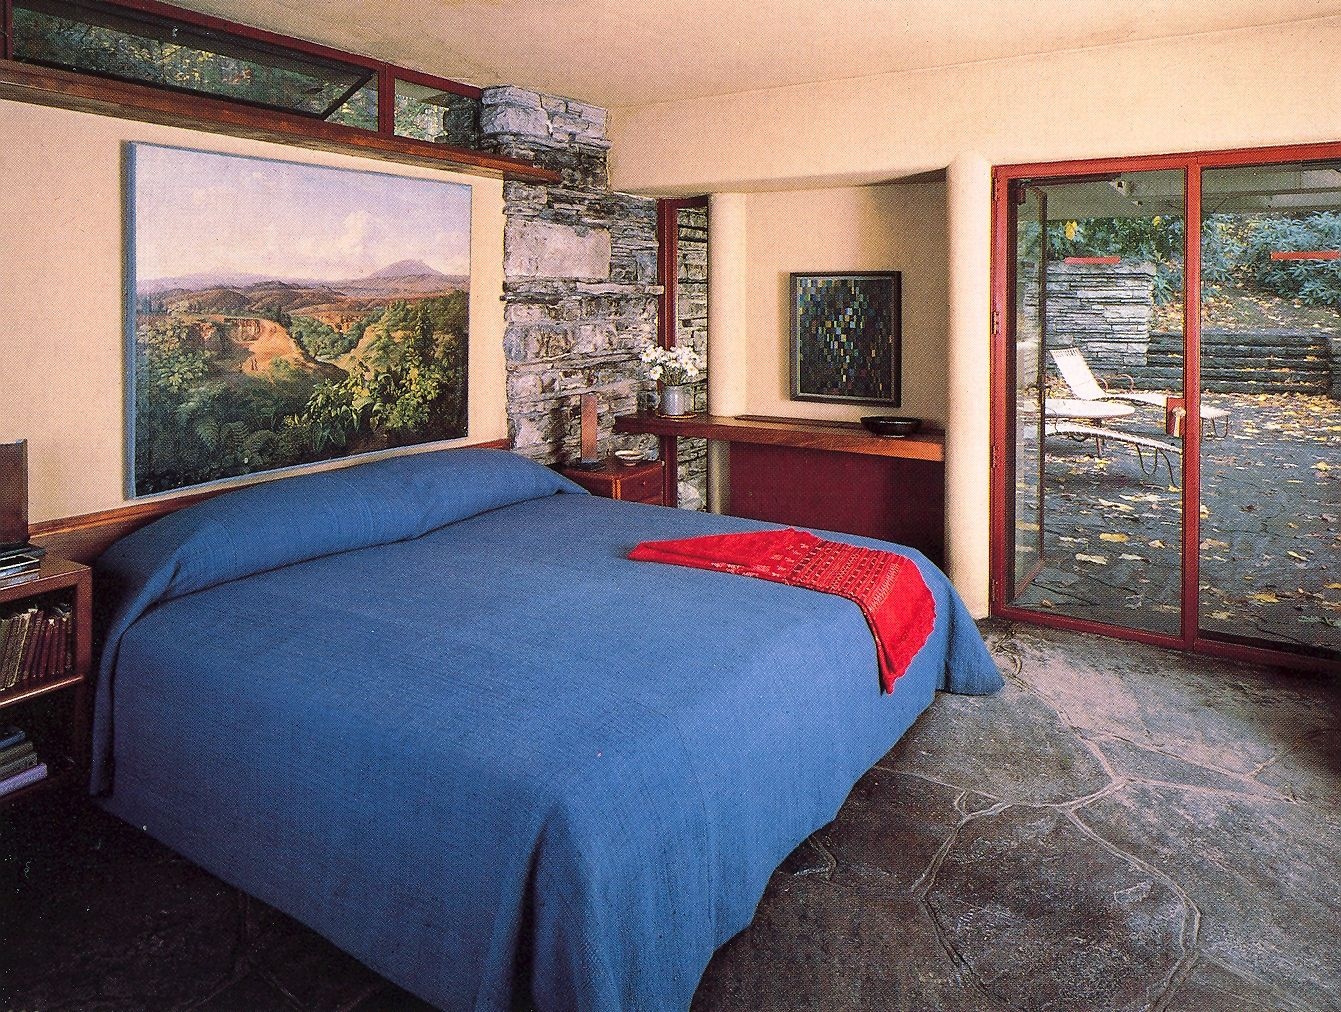 Guest Room Big House Tour Fallingwater One Ce Upon Ce